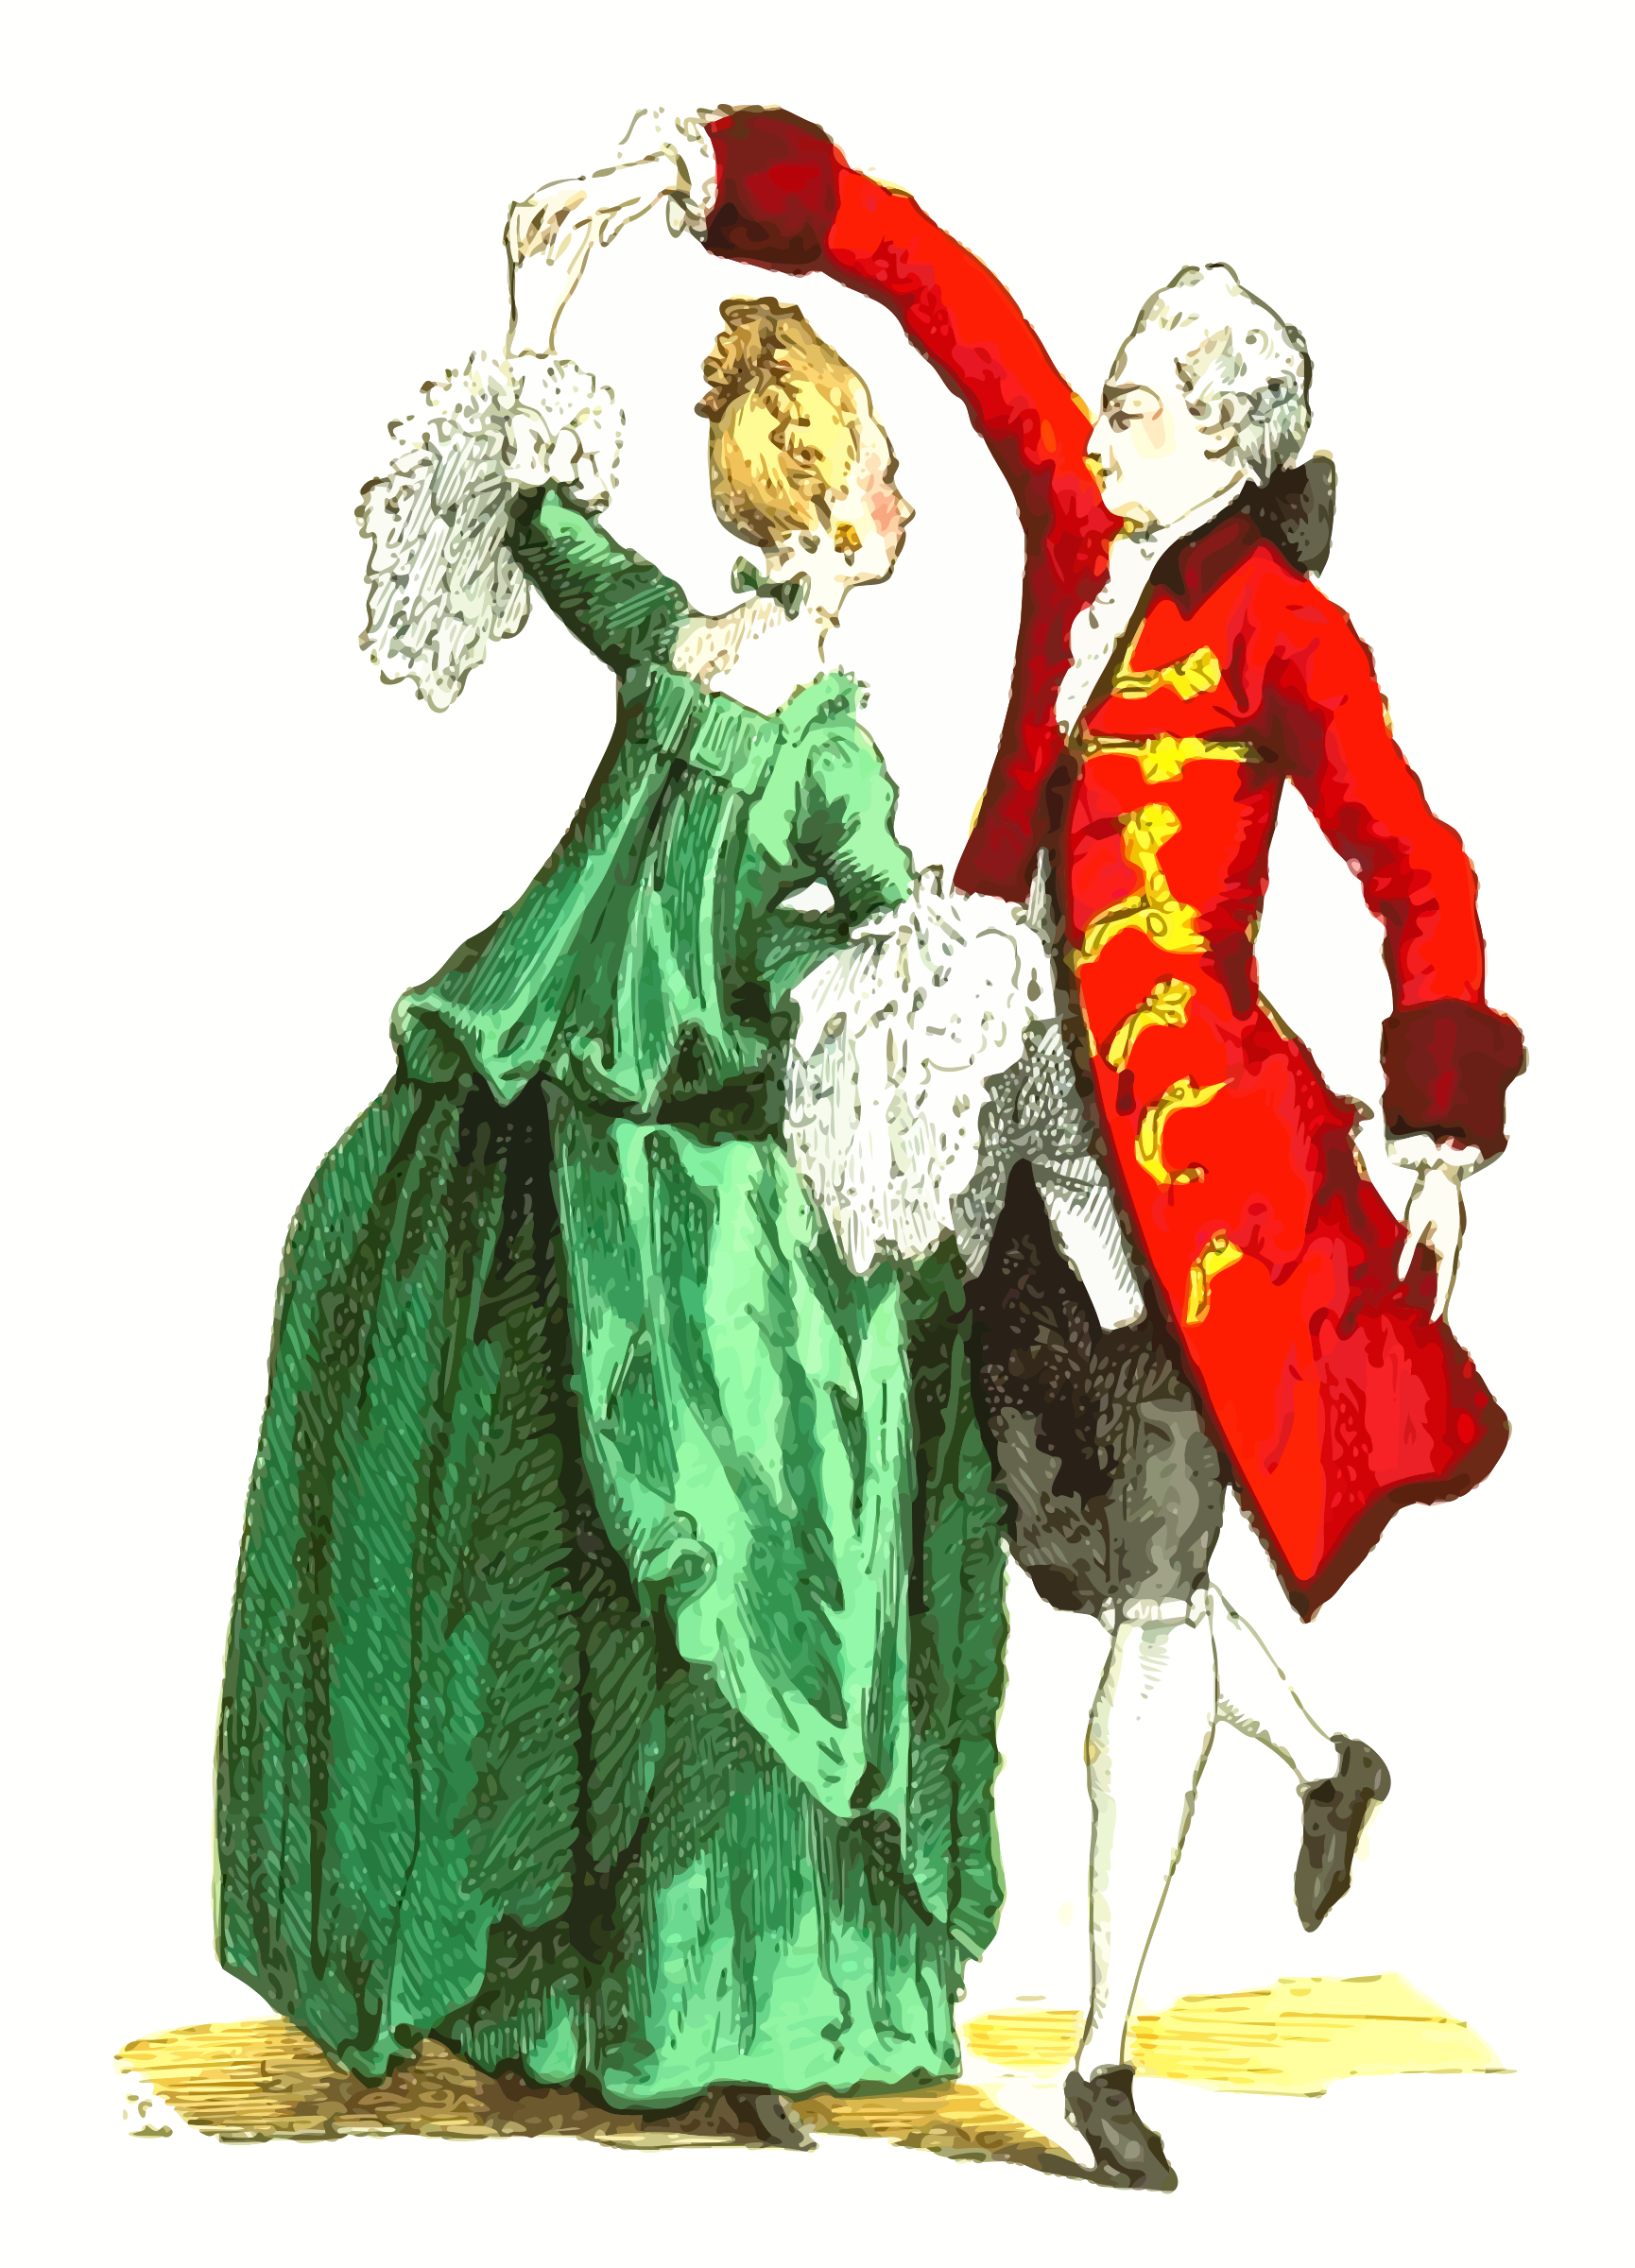 18th century French ballroom costumes by Firkin